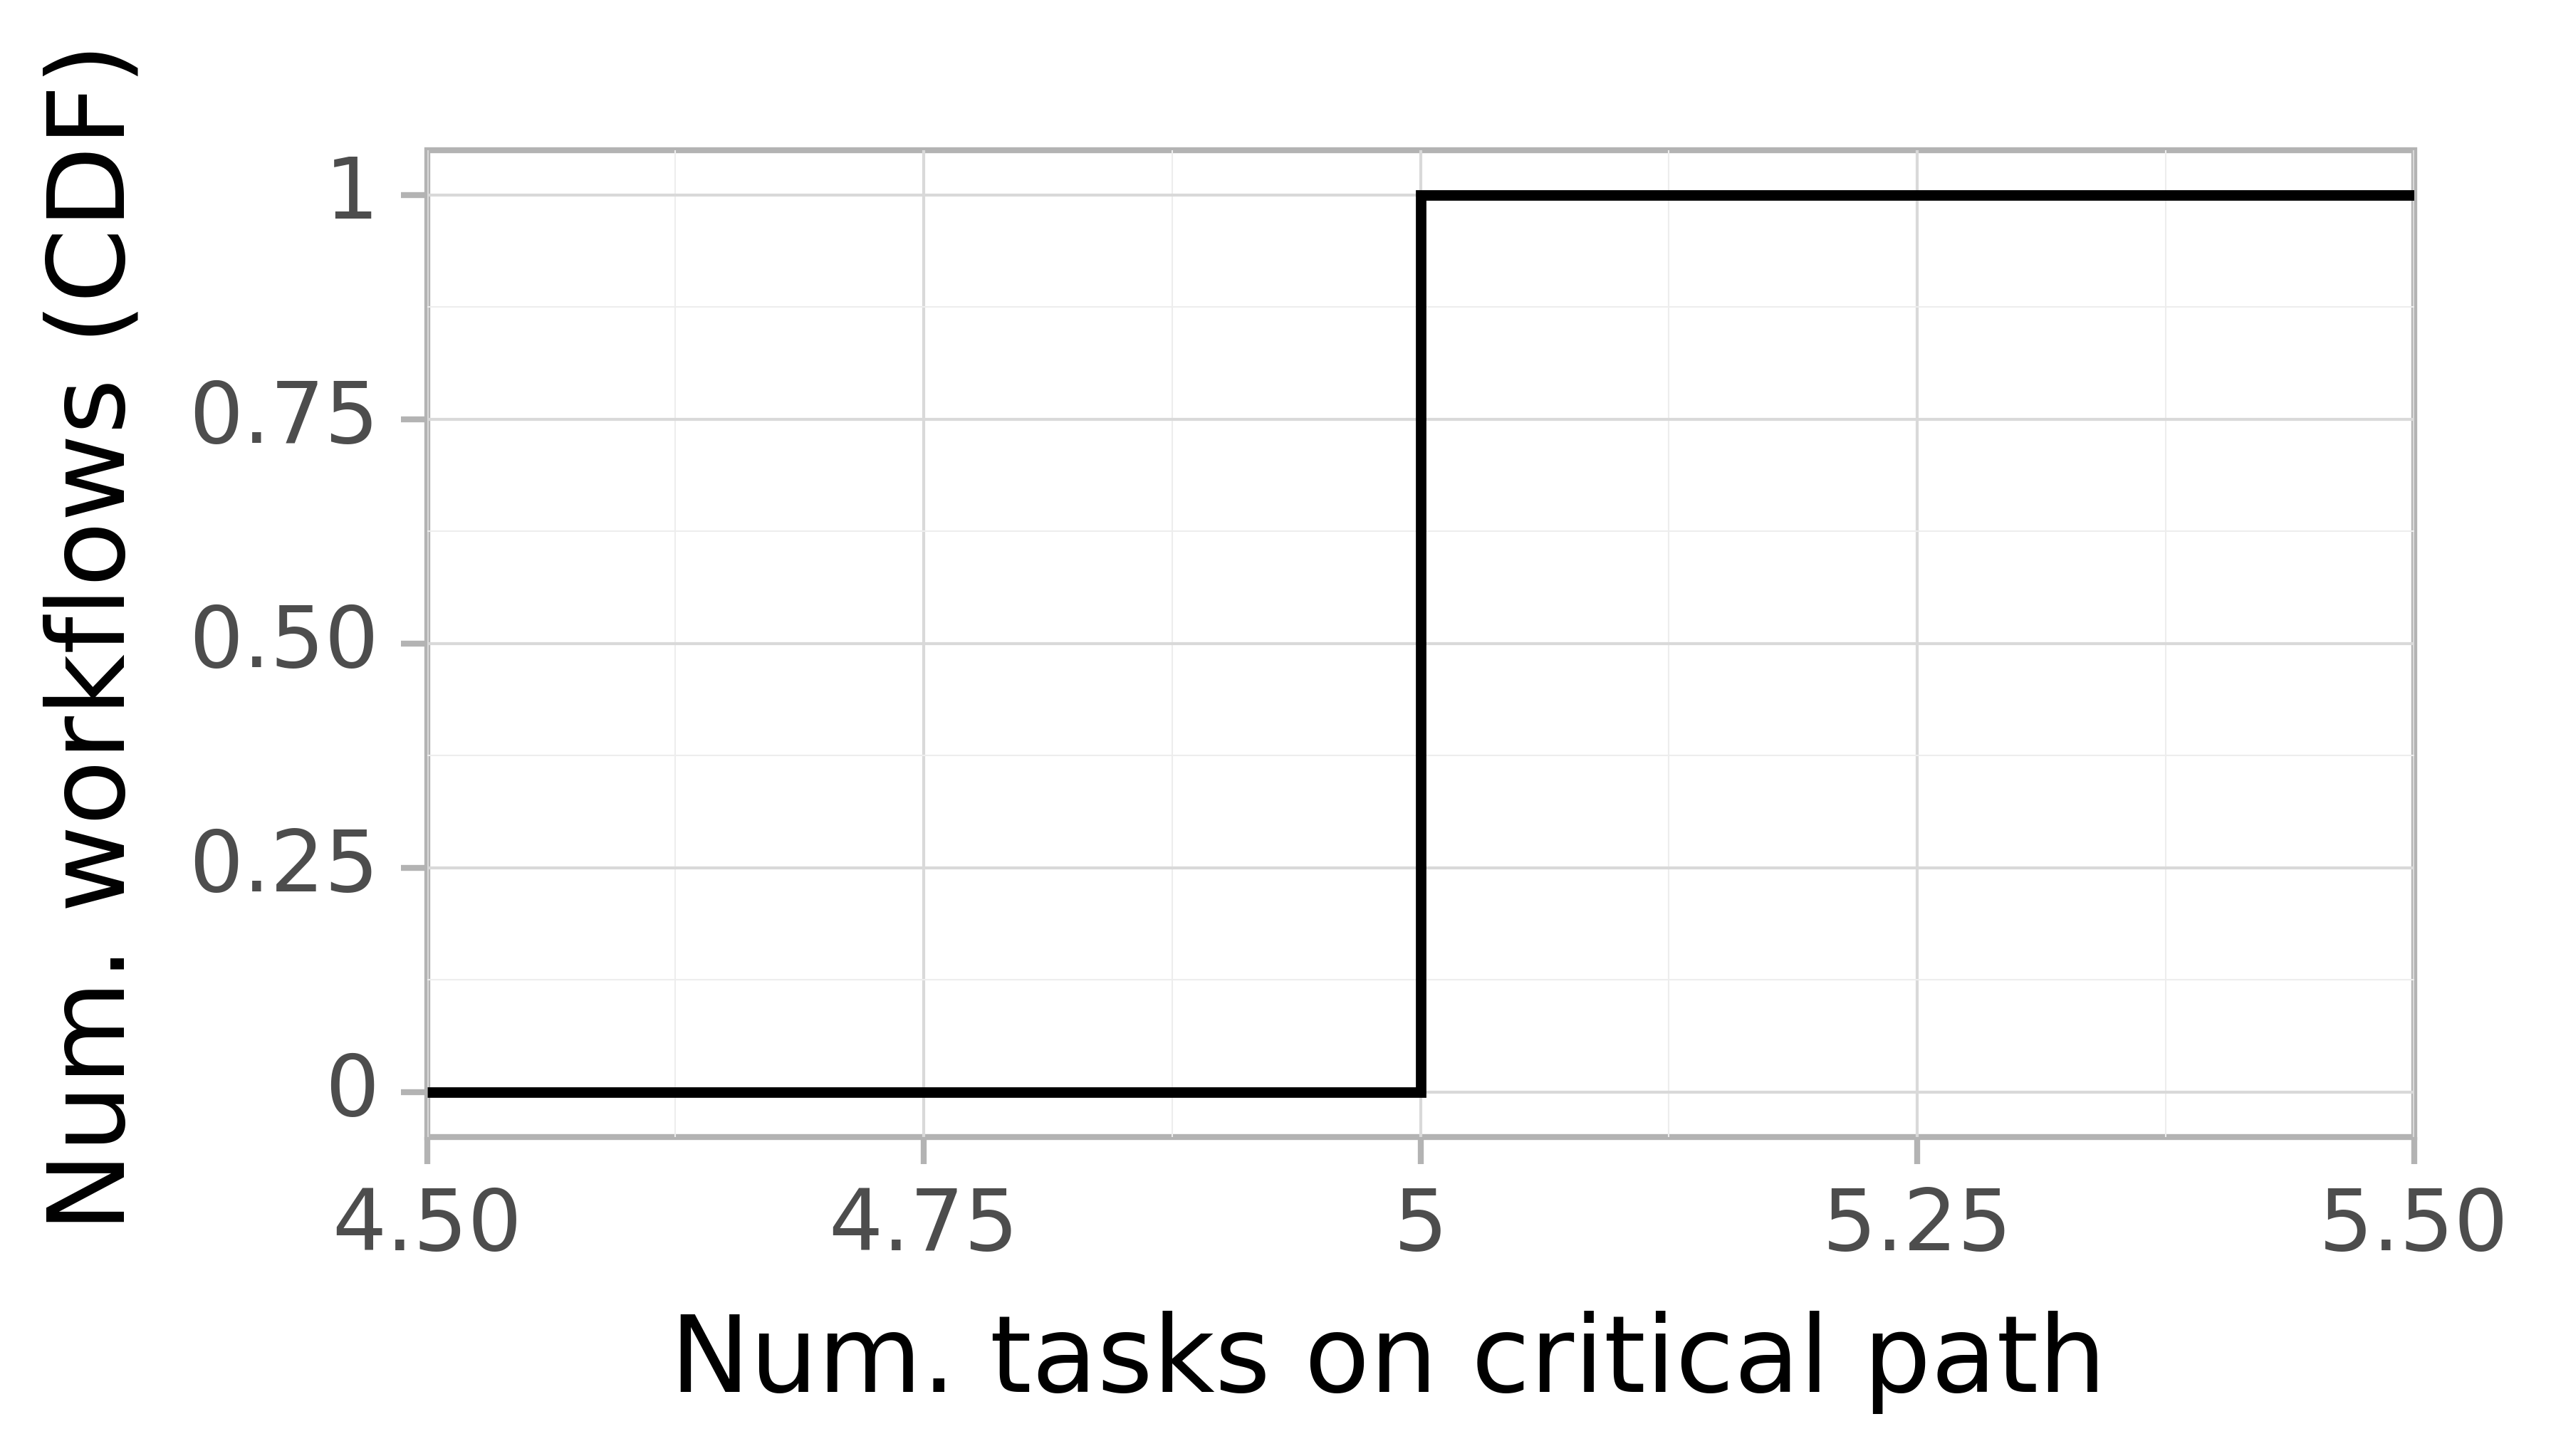 Job critical path task count graph for the askalon-new_ee8 trace.